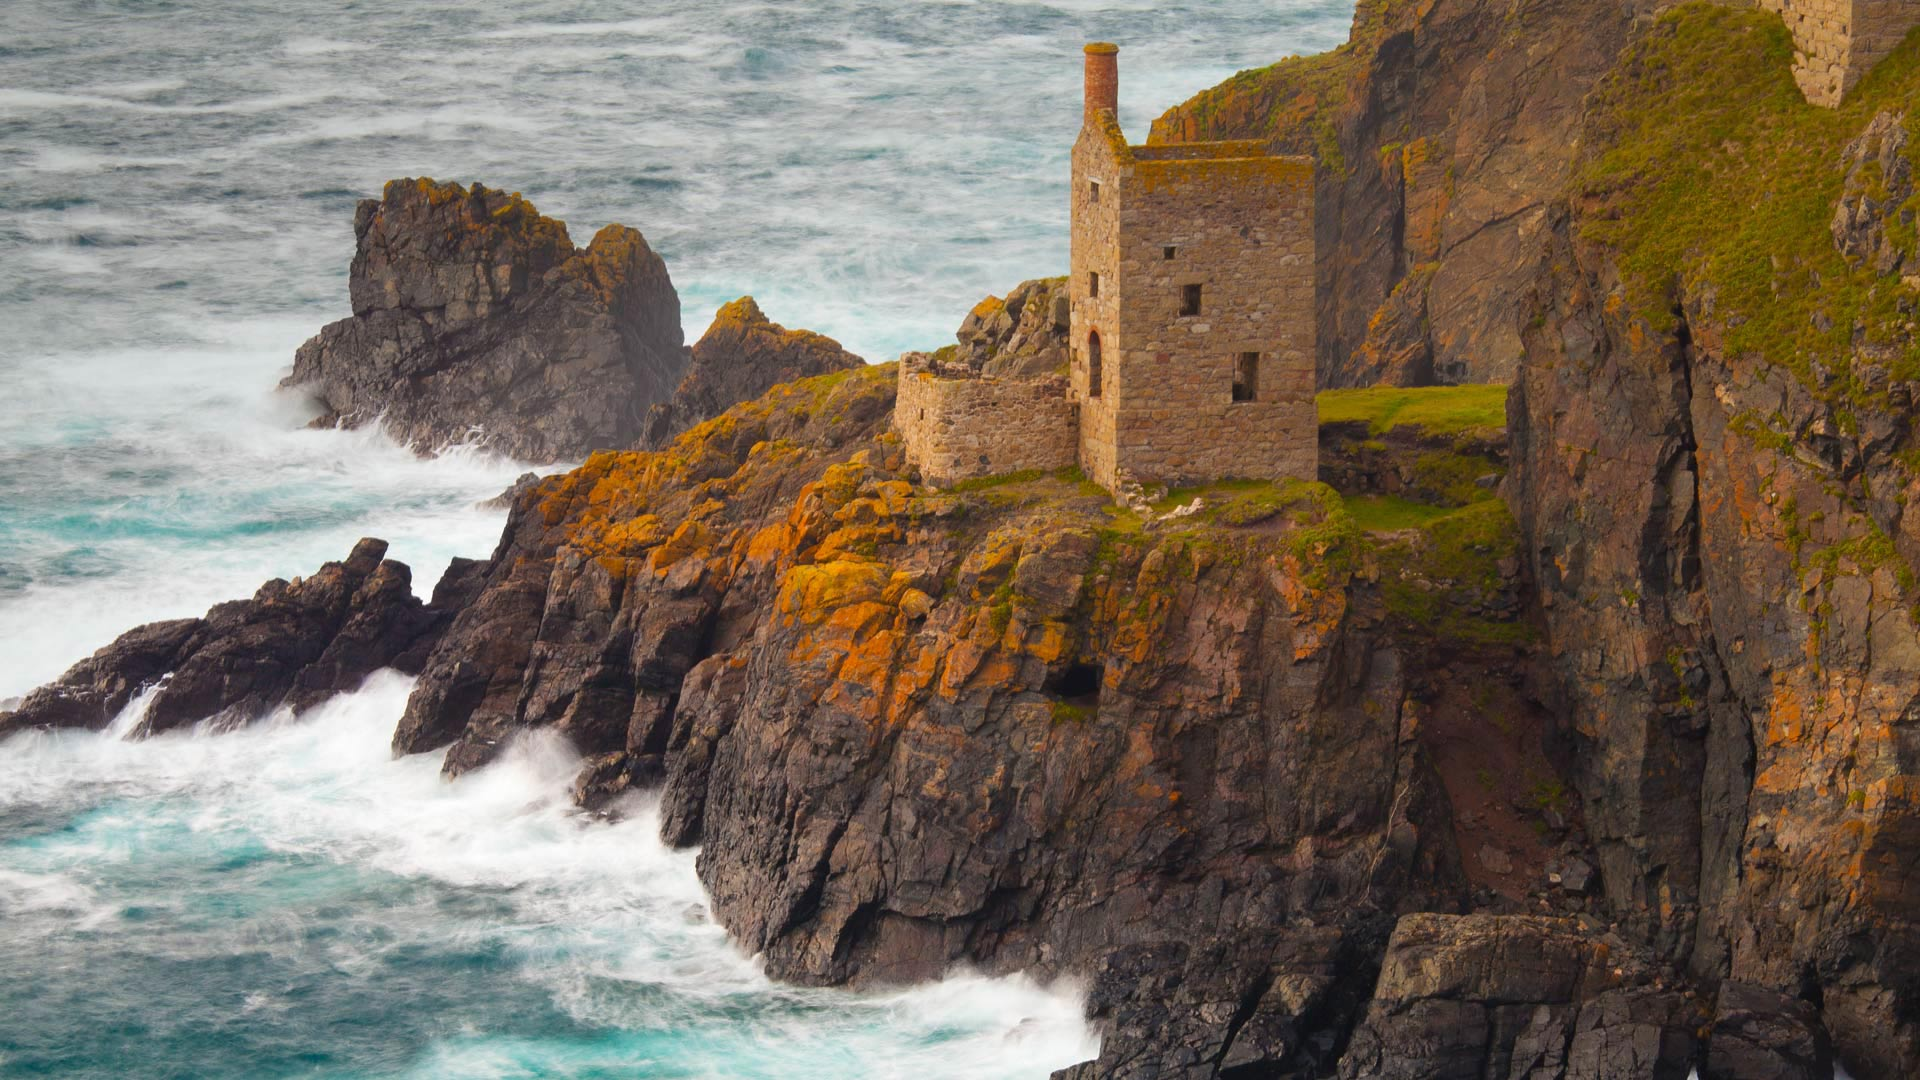 Botallack Mine in Cornwall, England (© Robert Harding/Masterfile)